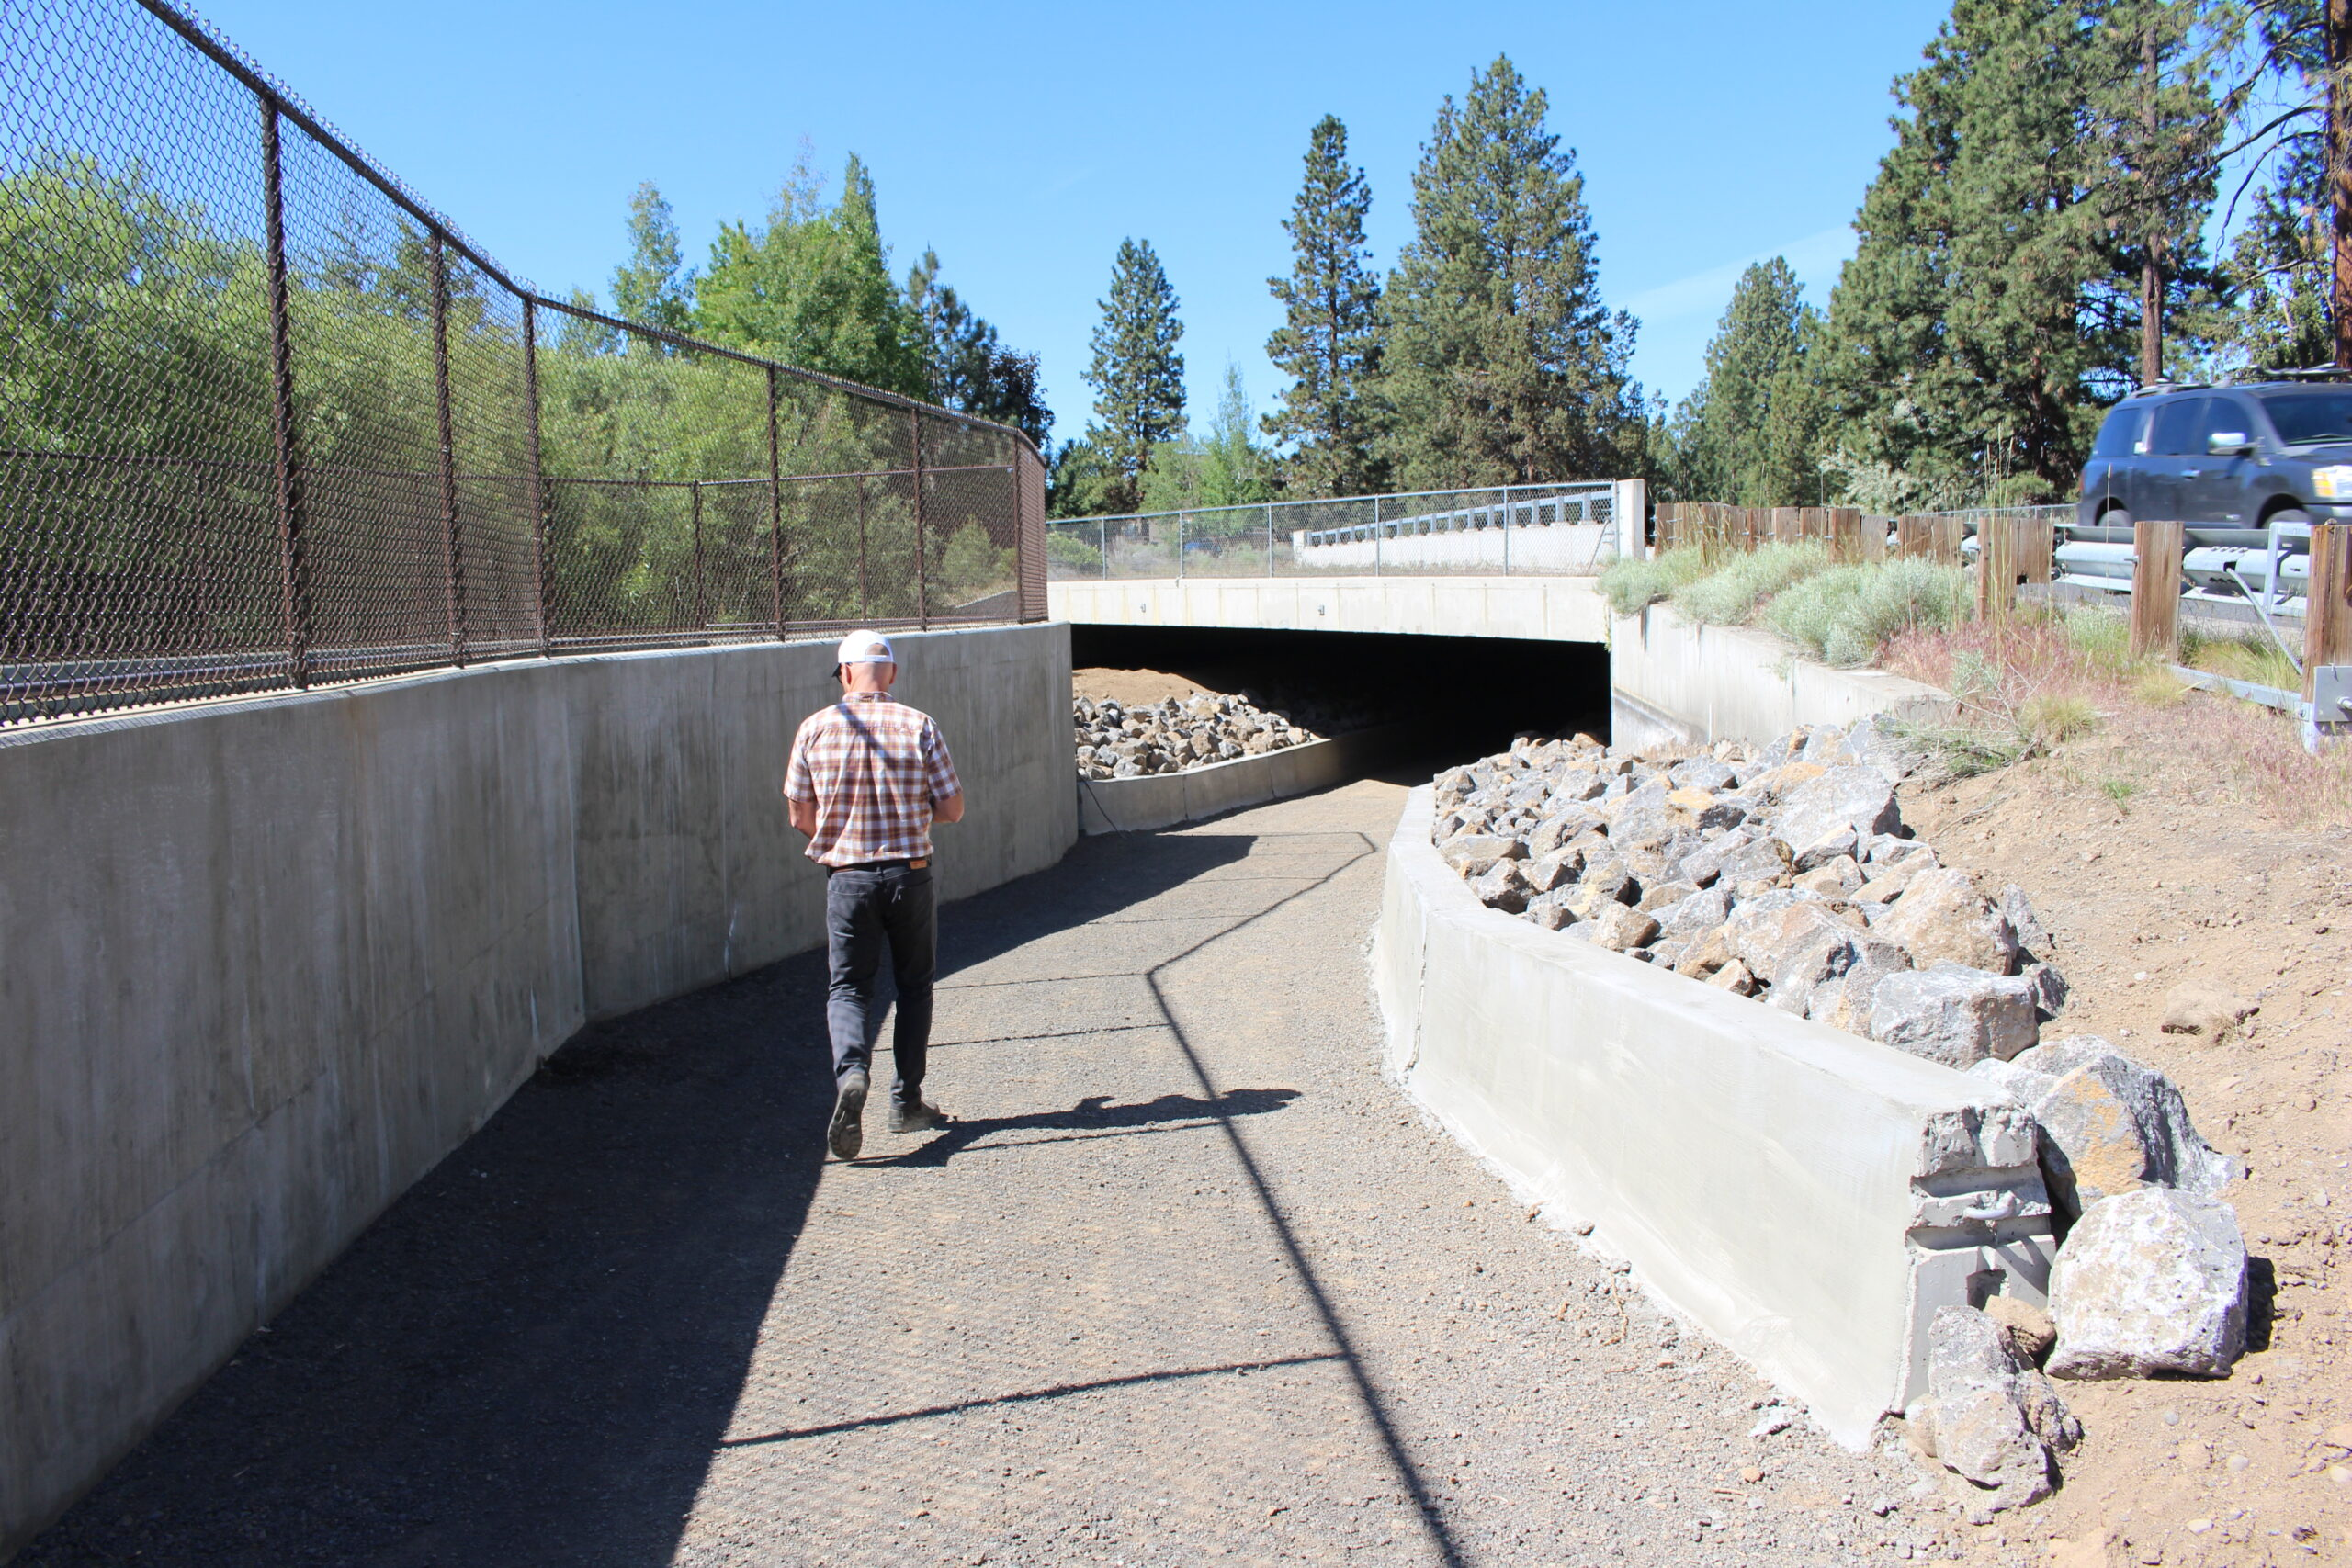 Trail undercrossing at Brookswood